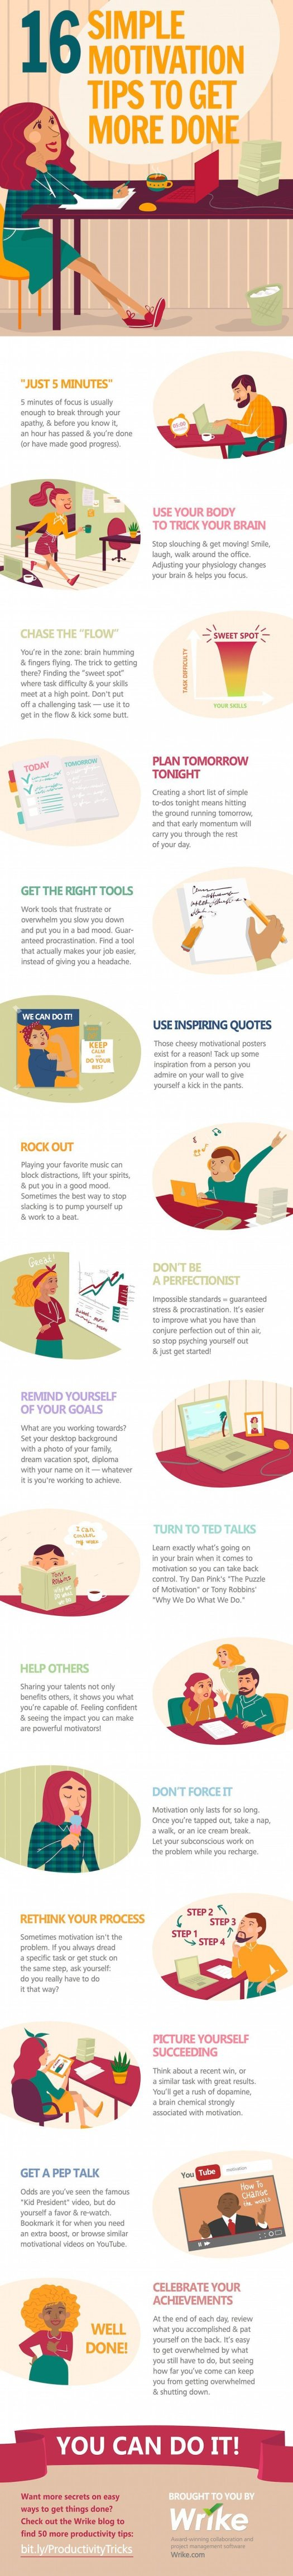 16 Simple Motivation Tips to Get More Done Infographic